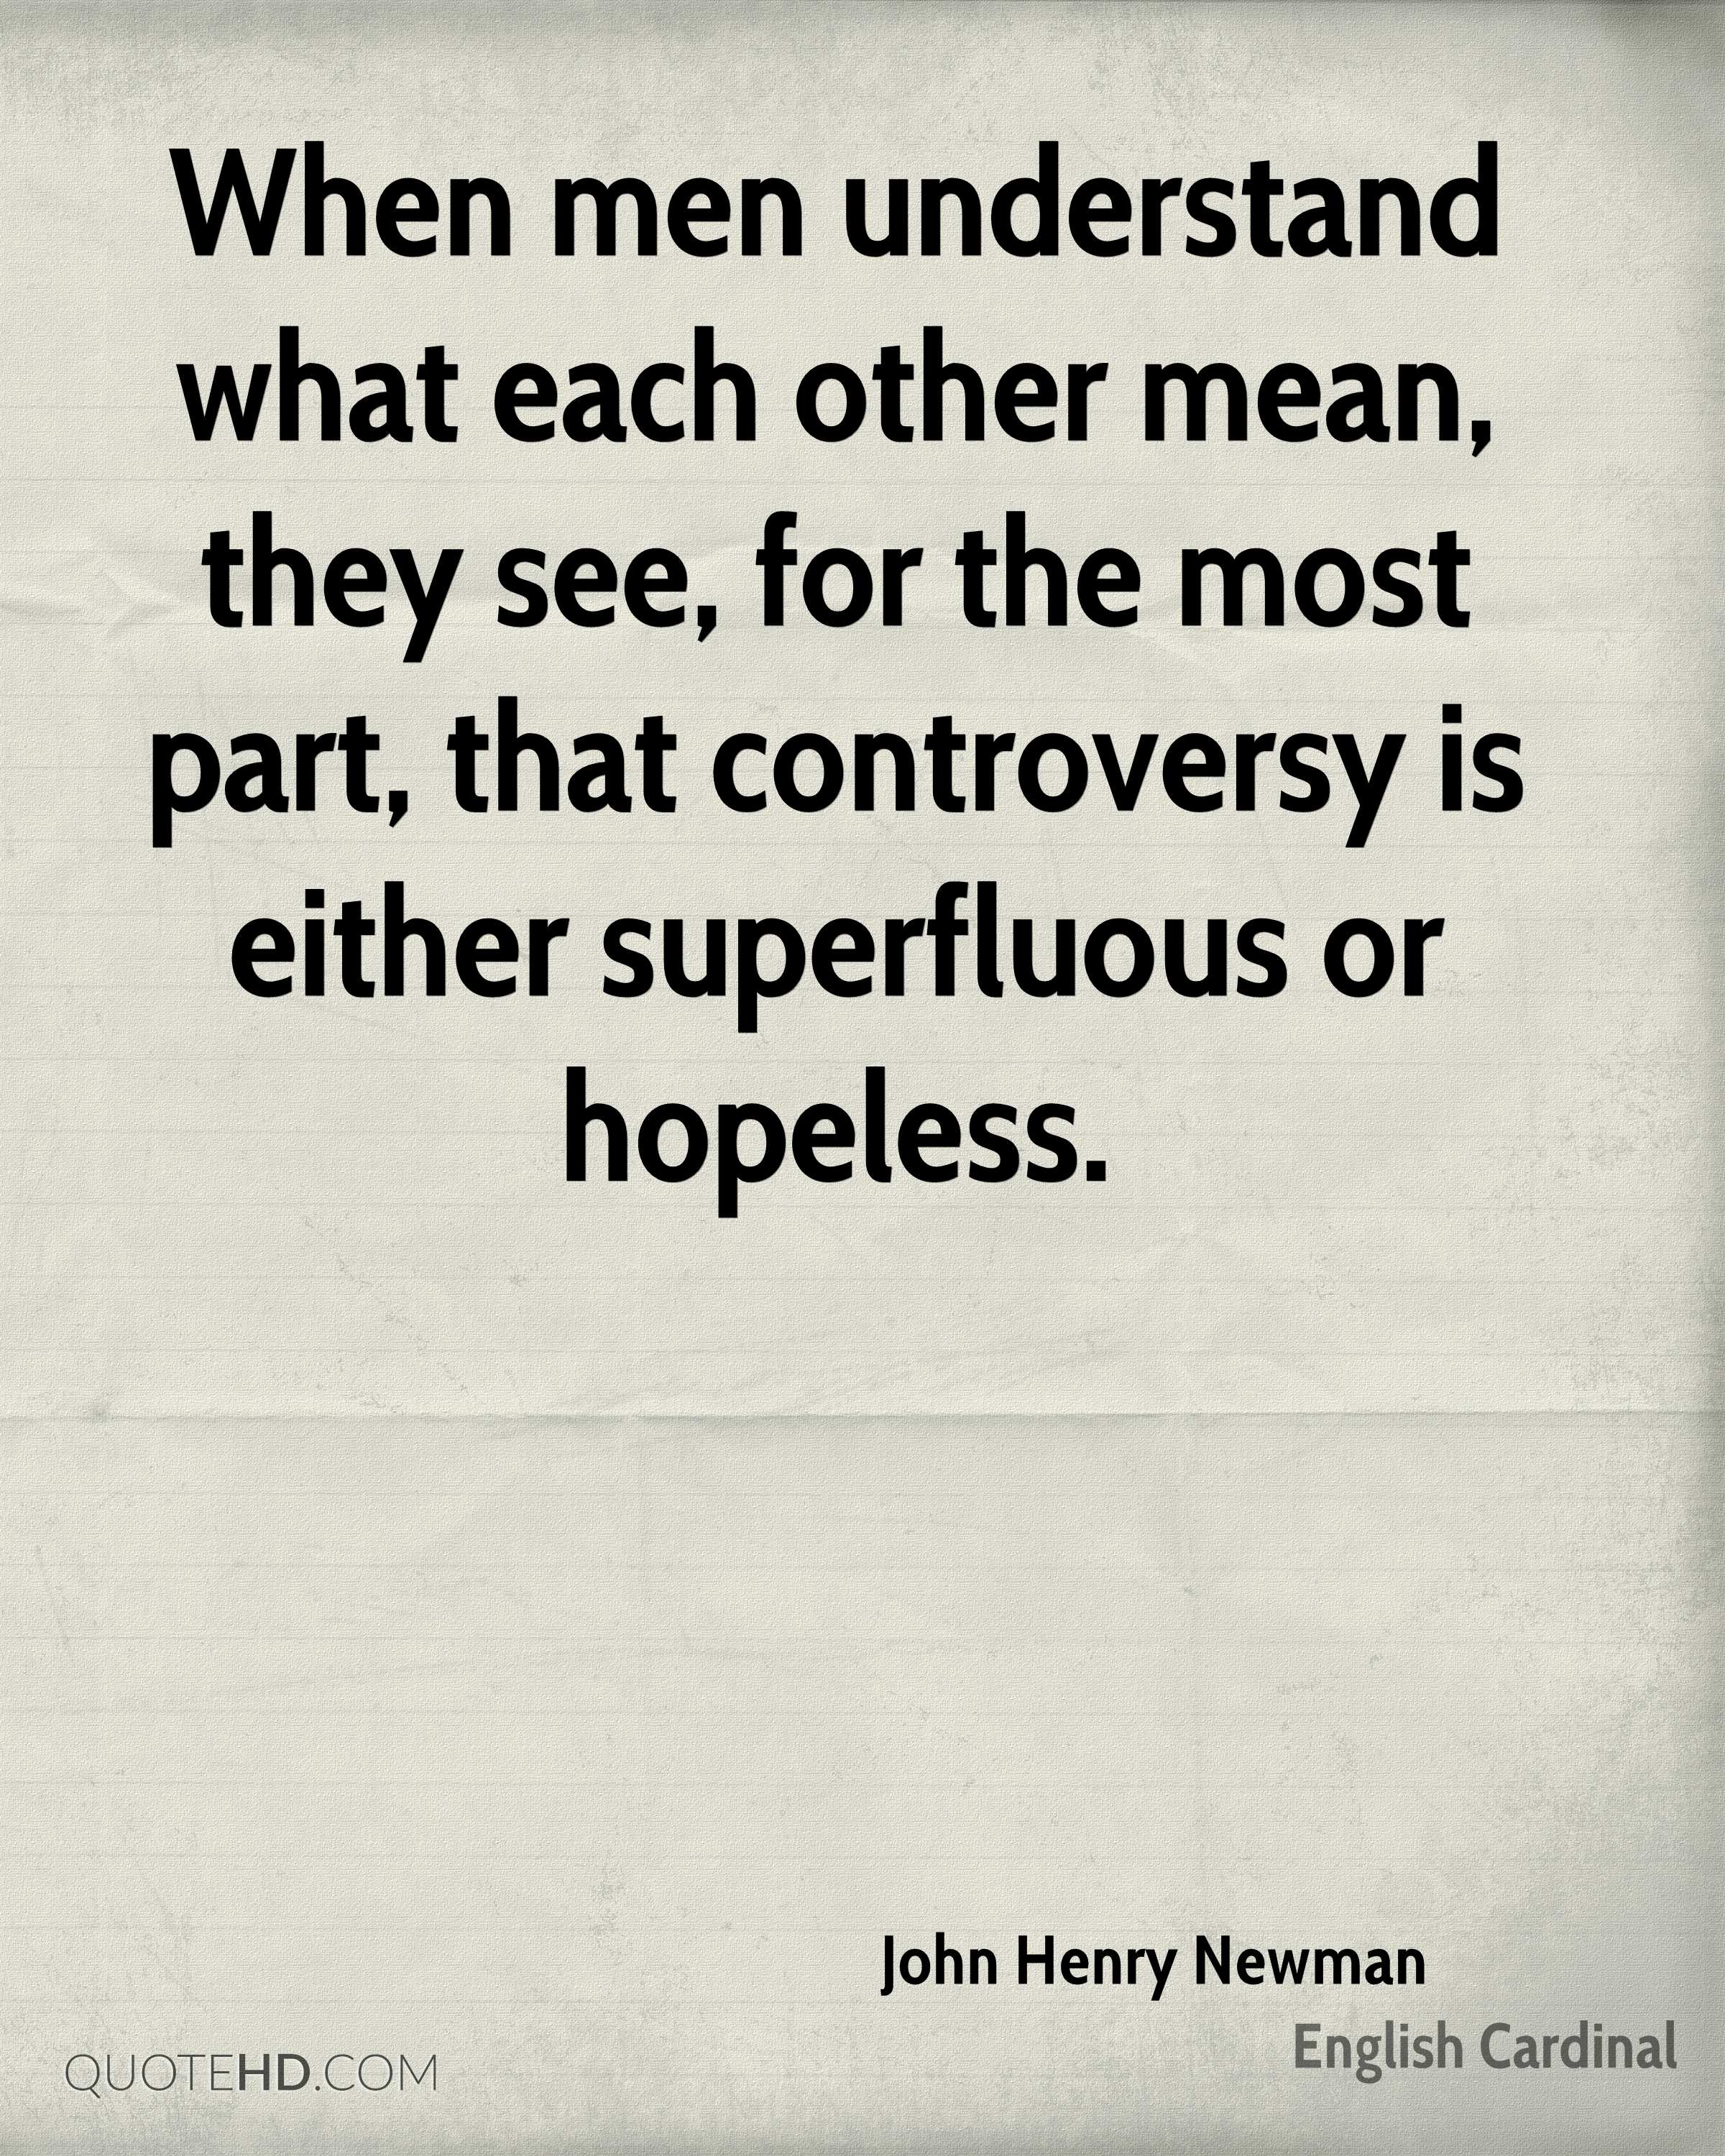 When men understand what each other mean, they see, for the most part, that controversy is either superfluous or hopeless.